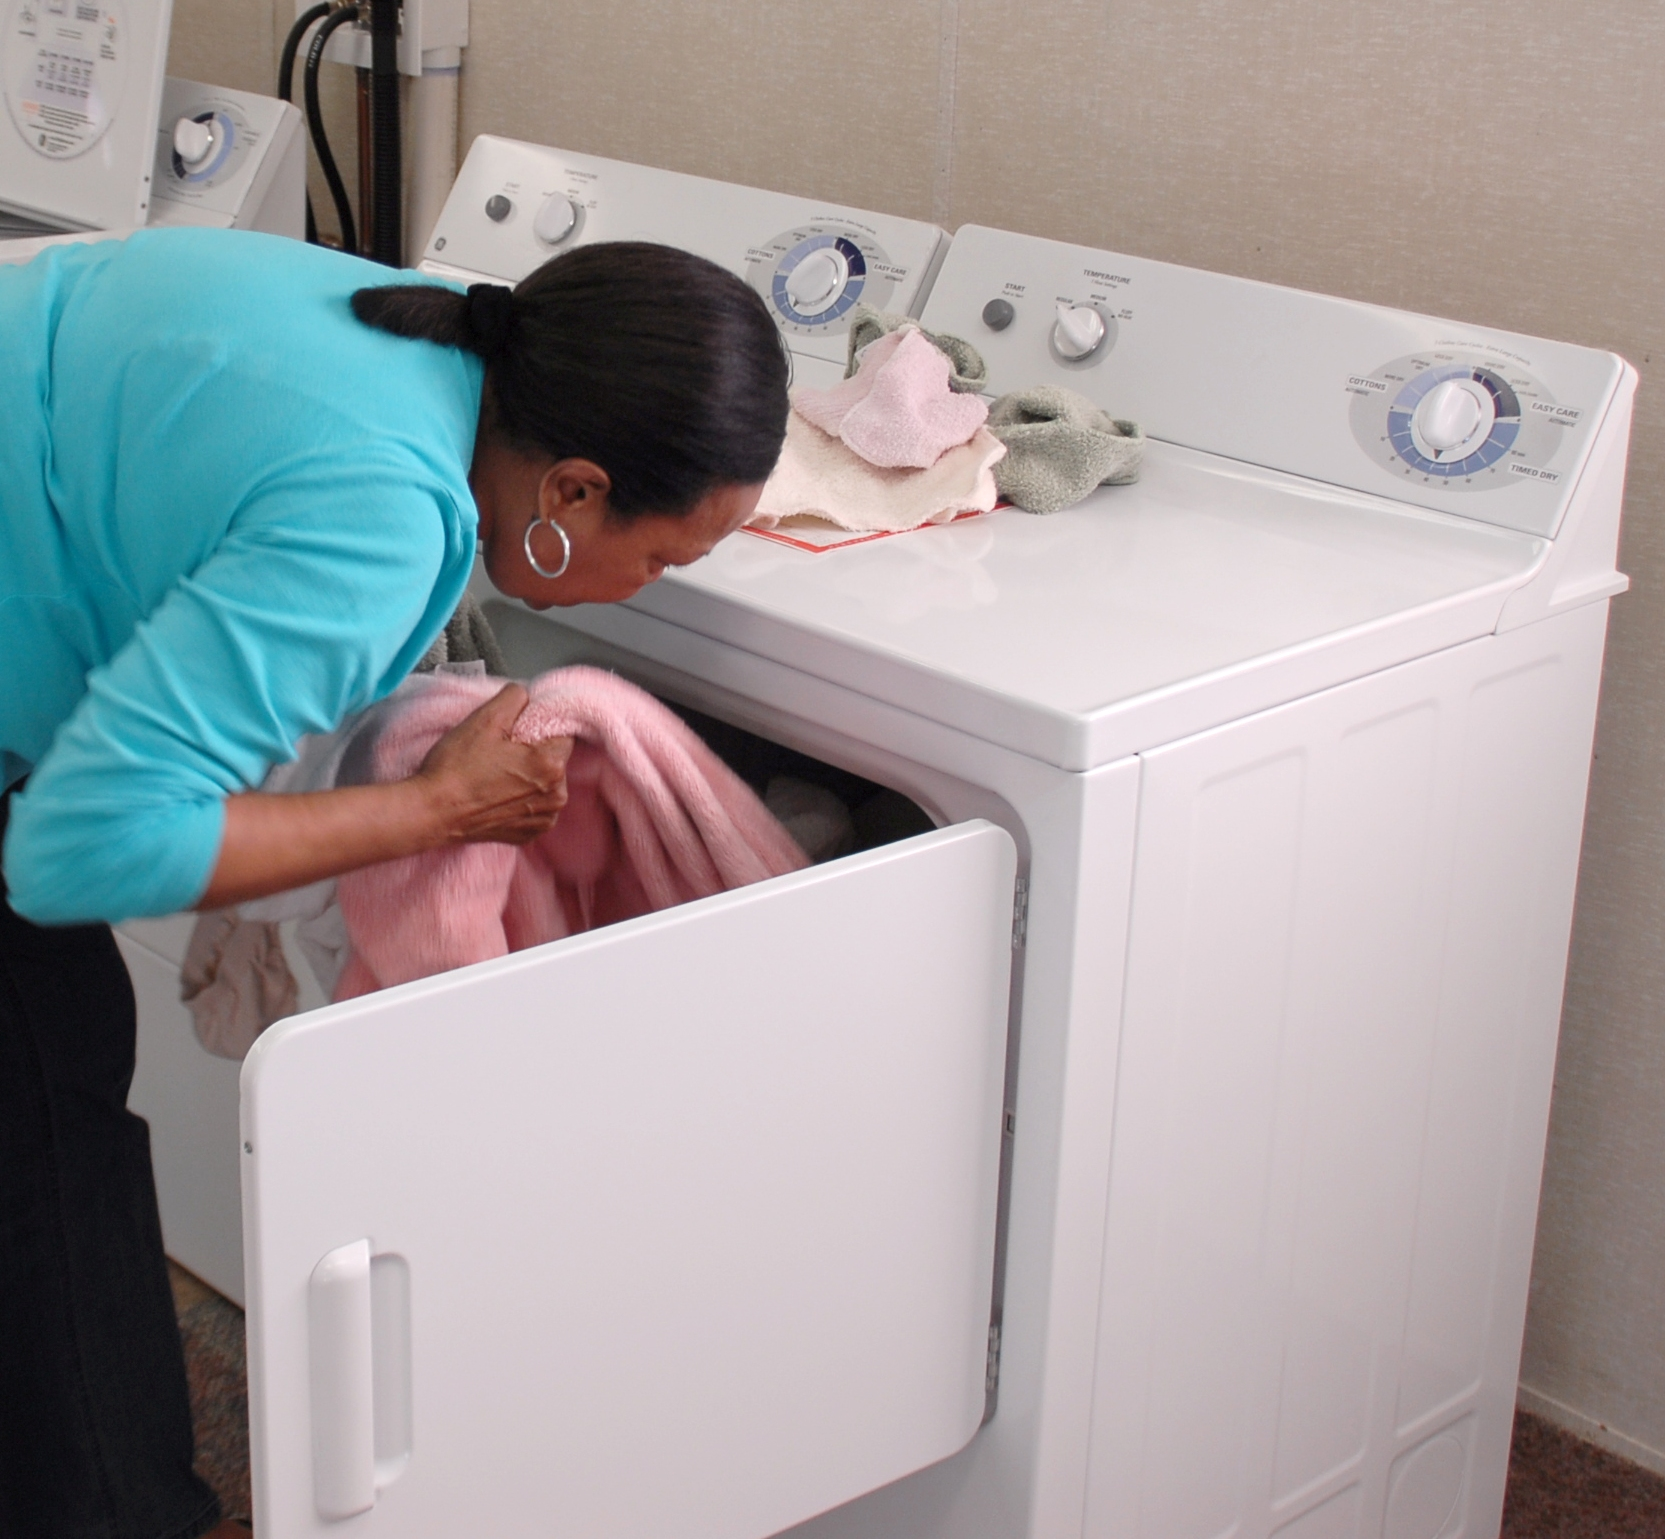 10-tips-to-keep-your-appliances-in-good-shape_05